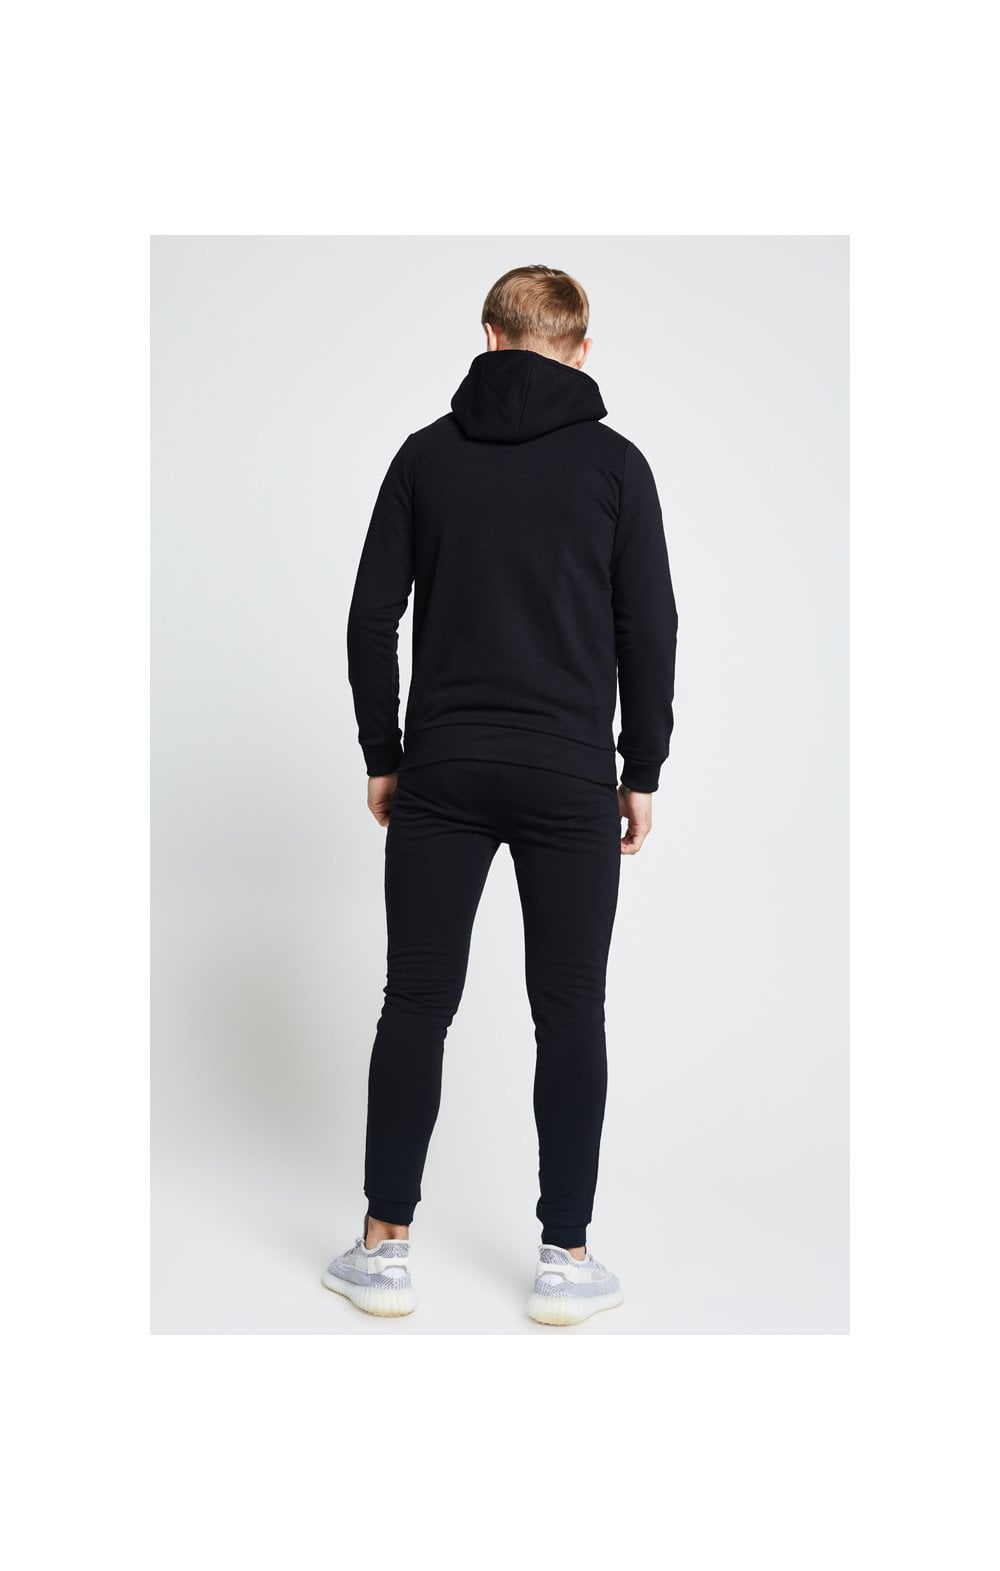 Load image into Gallery viewer, Illusive London Zip Through Hoodie - Black (5)